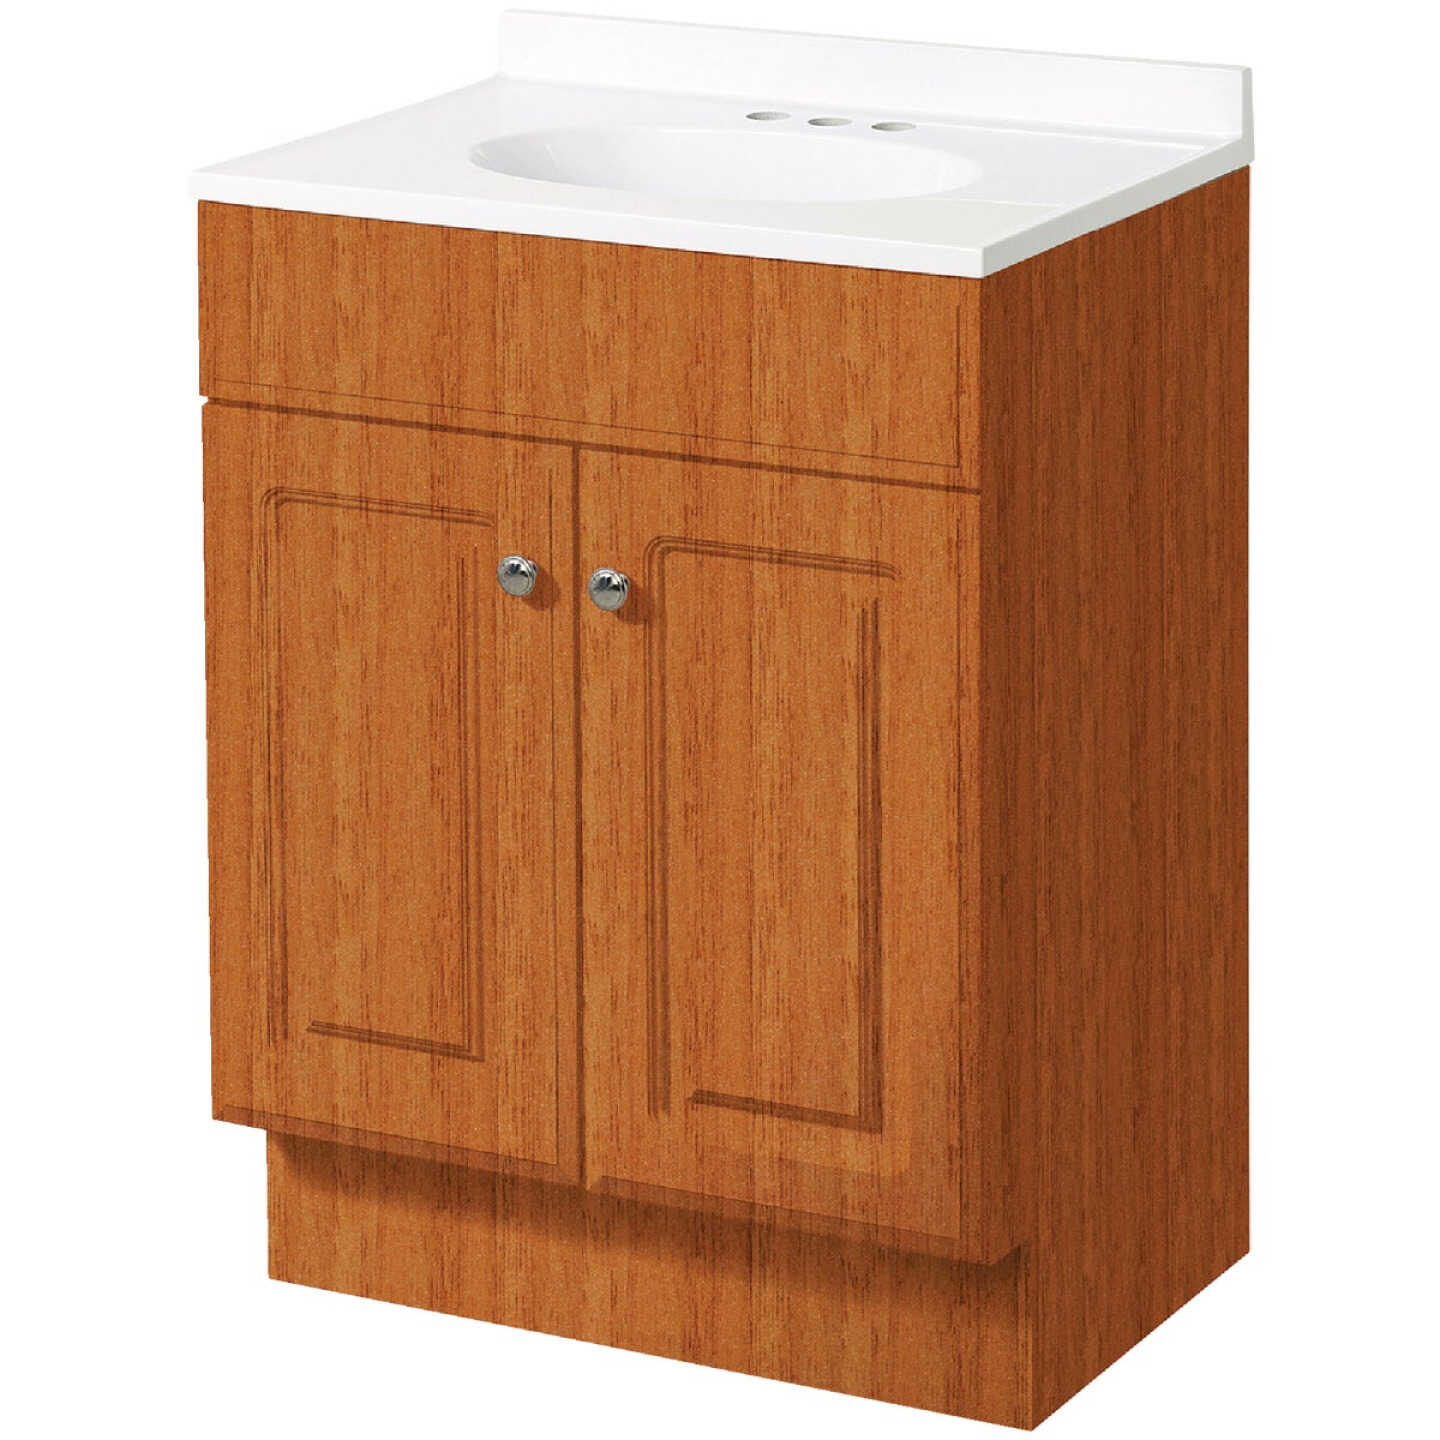 Zenith Zenna Home Oak 30 In. W x 35 In. H x 18 In. D Vanity with White Cultured Marble Top Image 1